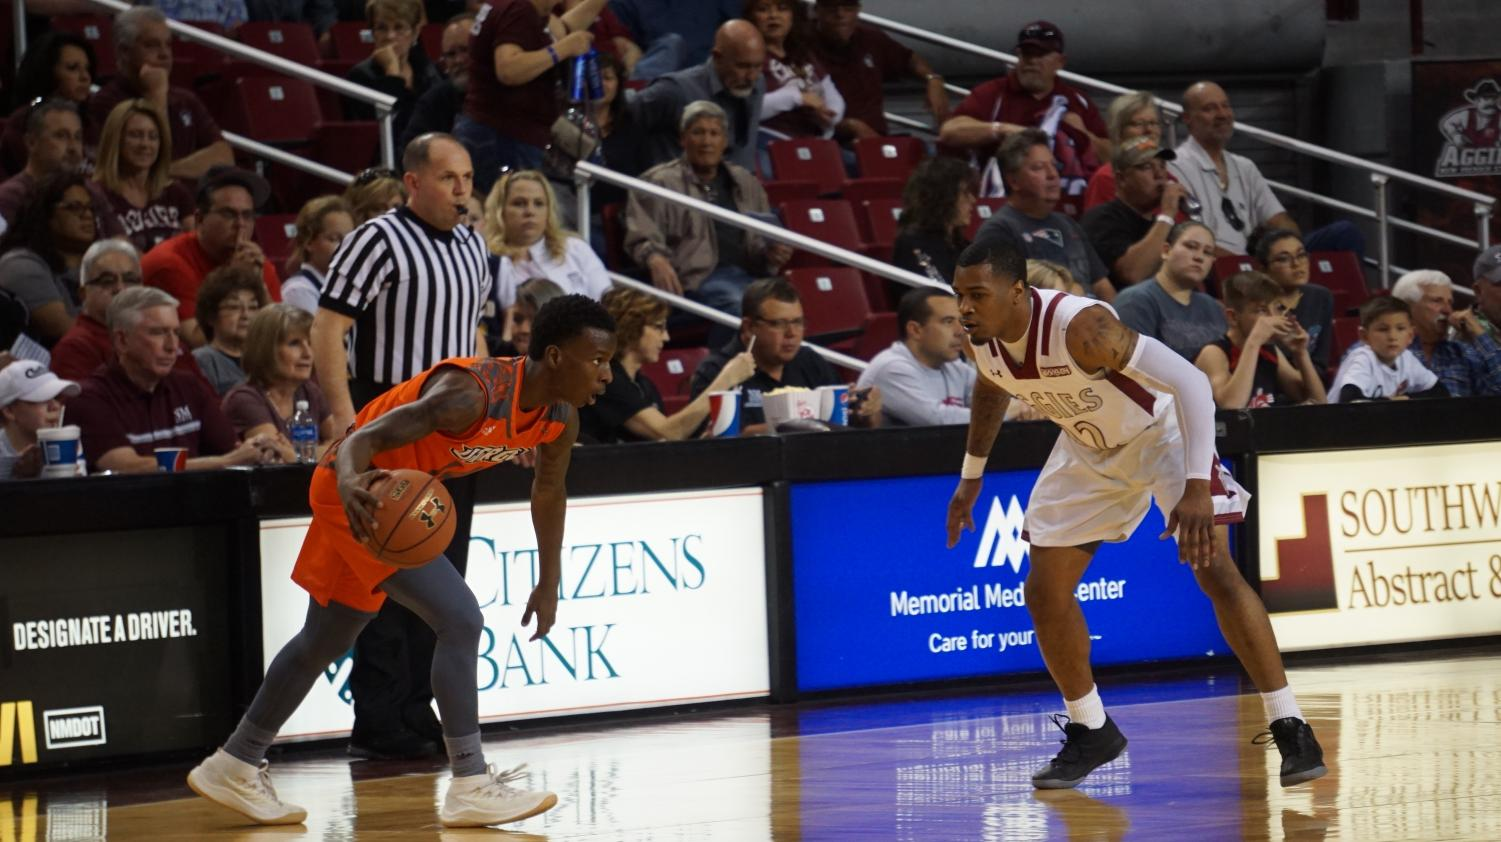 NMSU's AJ Harris locks in on defense against UTRGV's guard. The Aggies got their 20th win Saturday afternoon, a final score of 90-67.